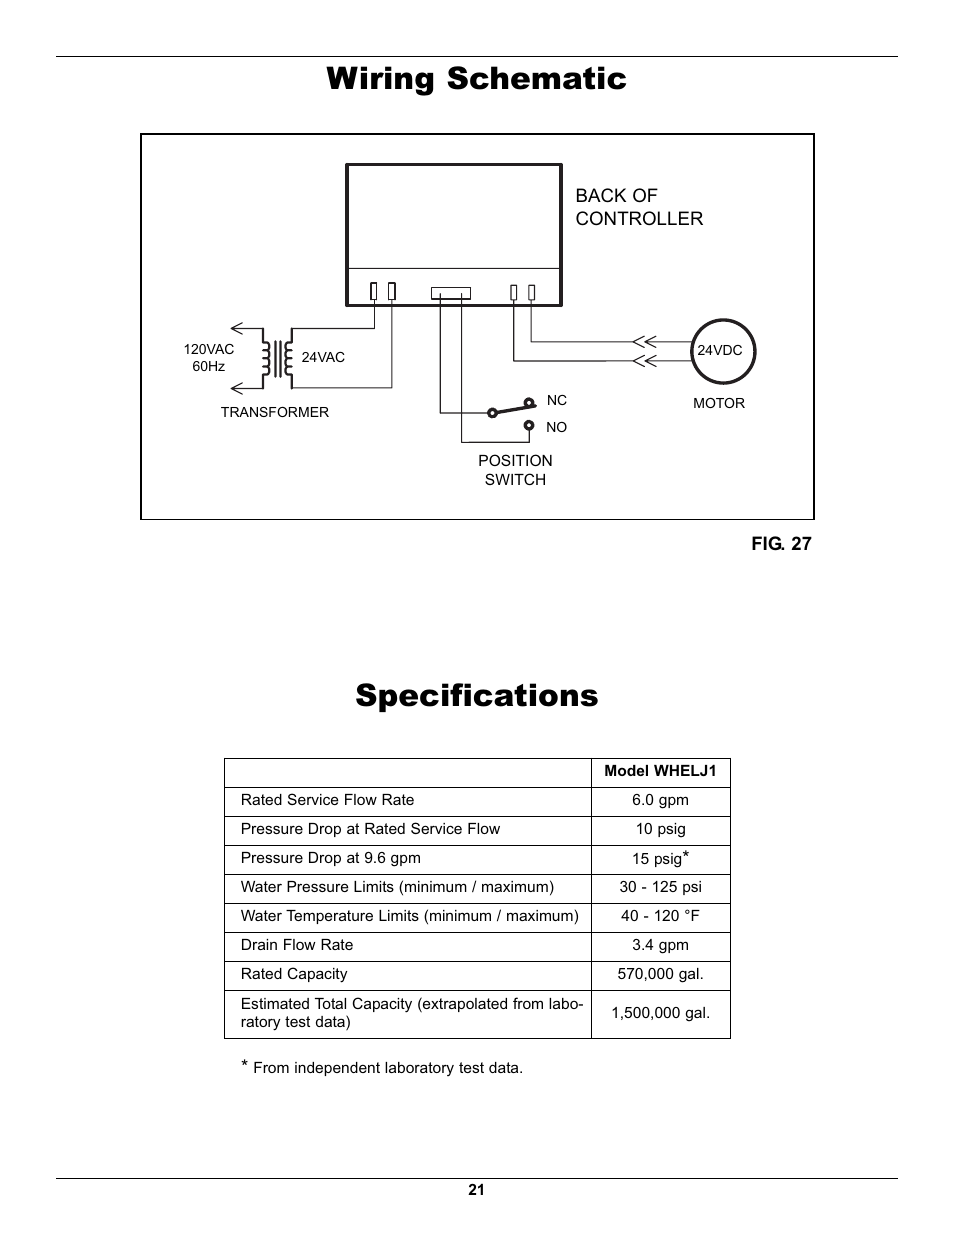 Wiring Schematic Specifications Whirlpool Whelj1 User Manual Diagram Page 21 27